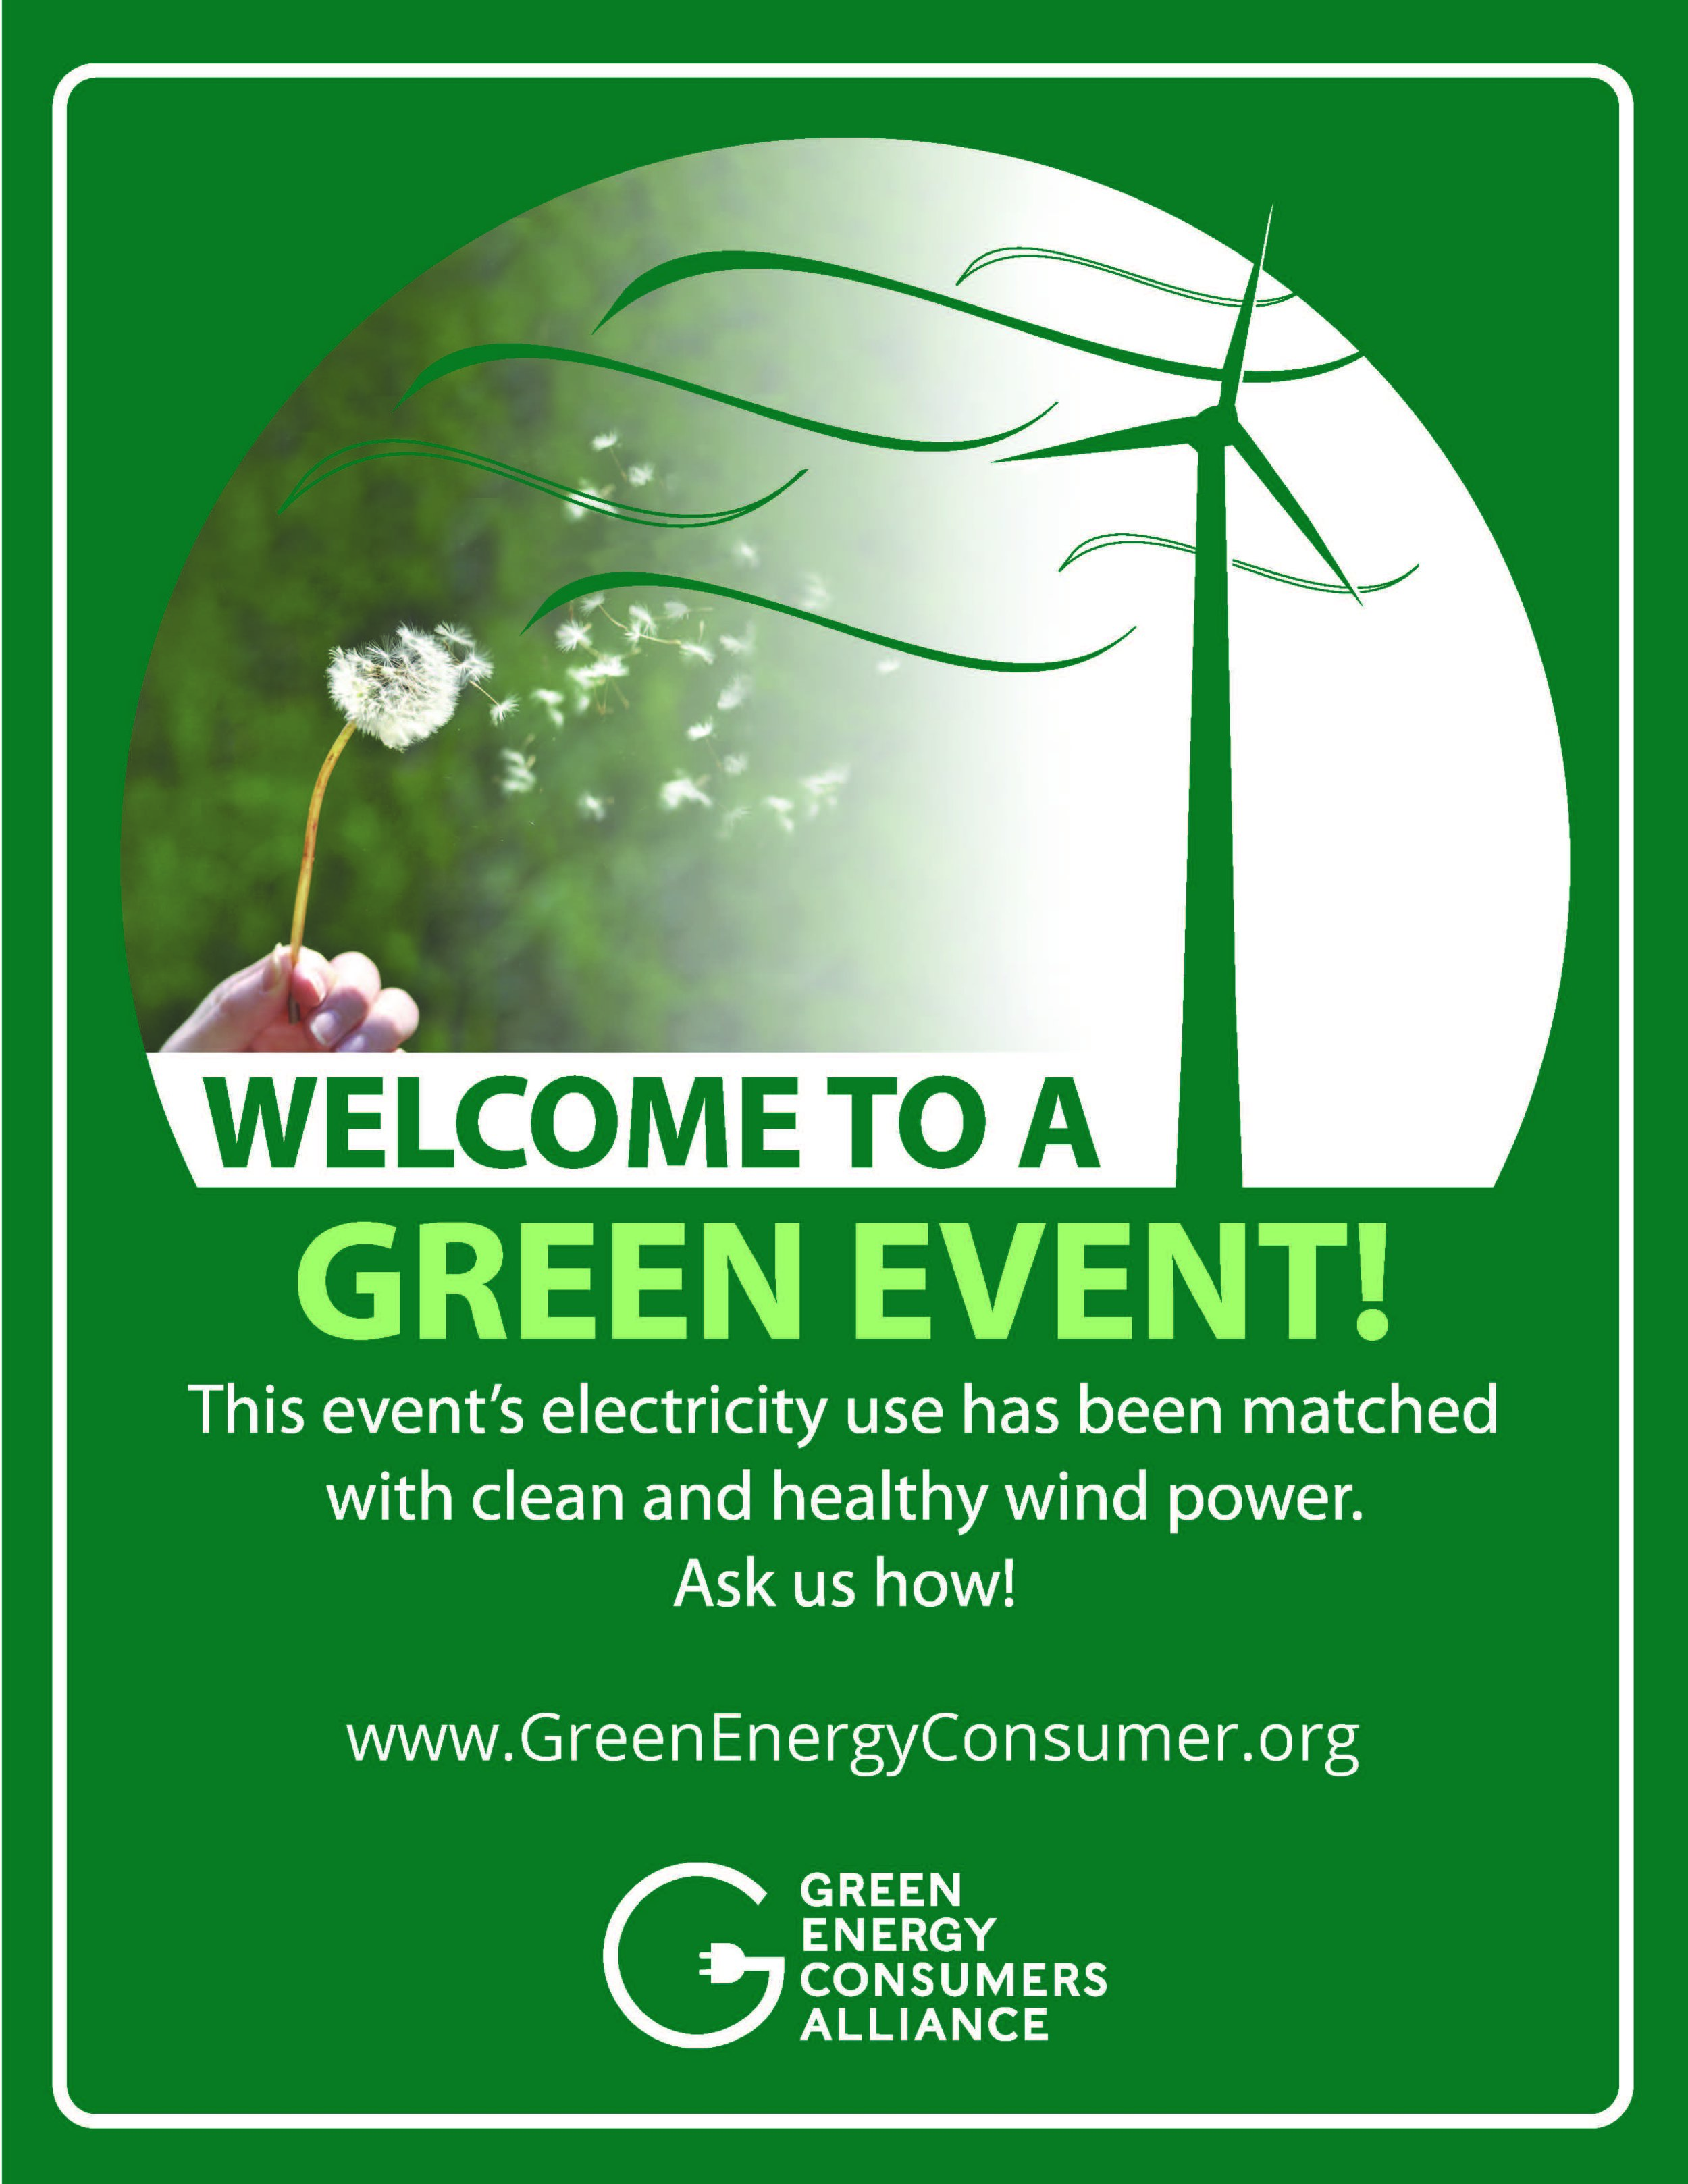 Thanks, Green Energy Consumers Alliance!